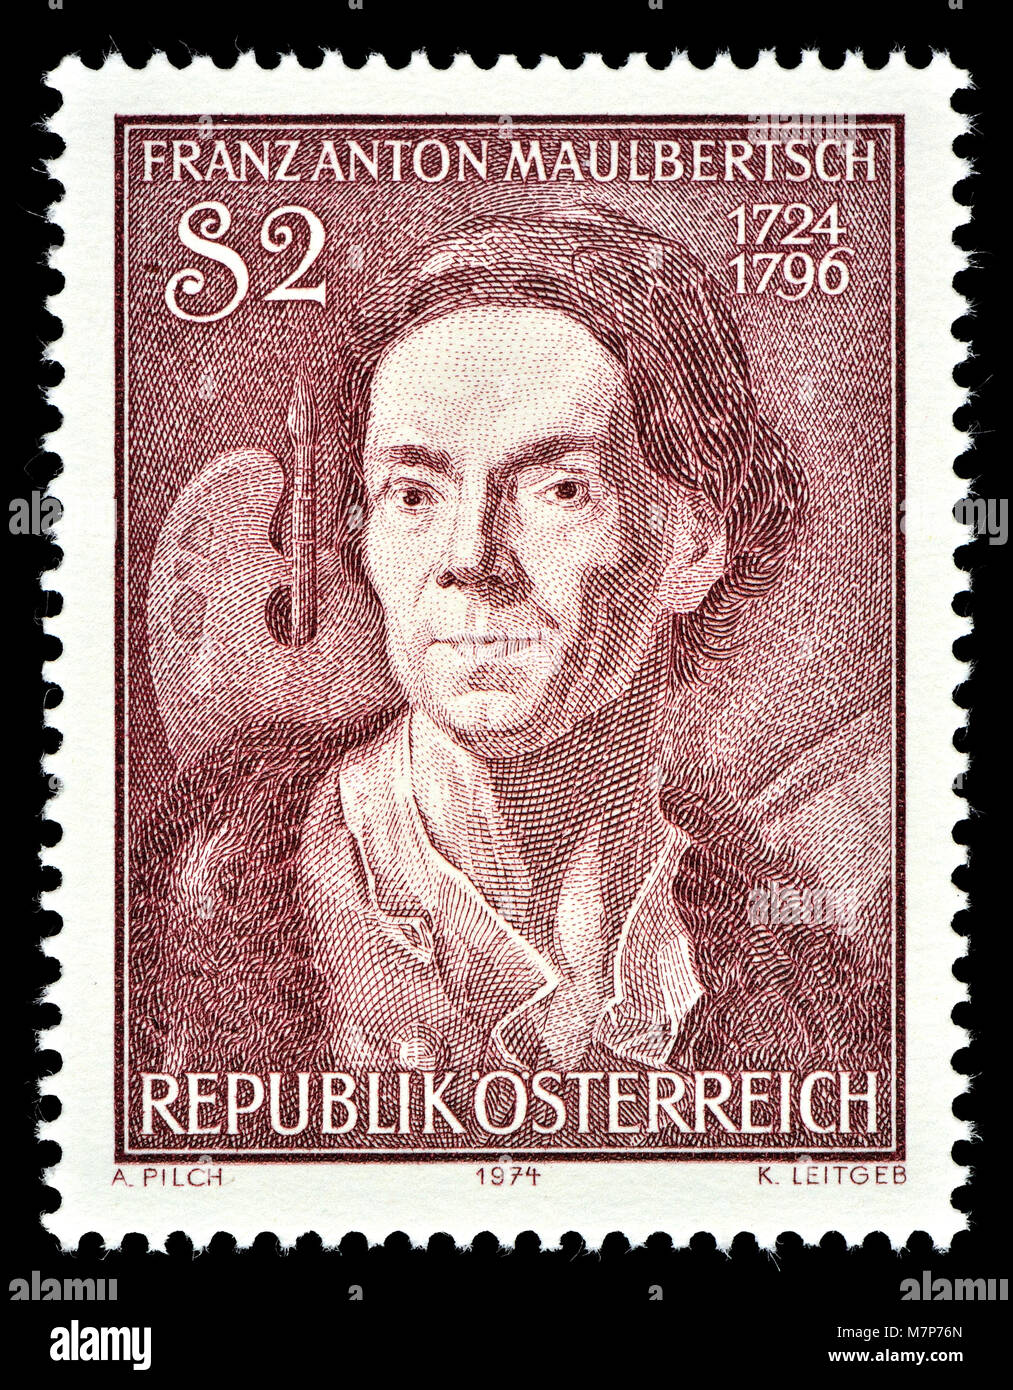 Austrian postage stamp (1974) : Franz Anton Maulbertsch (1724 – 1796) Austrian painter and engraver, renowned exponent - Stock Image